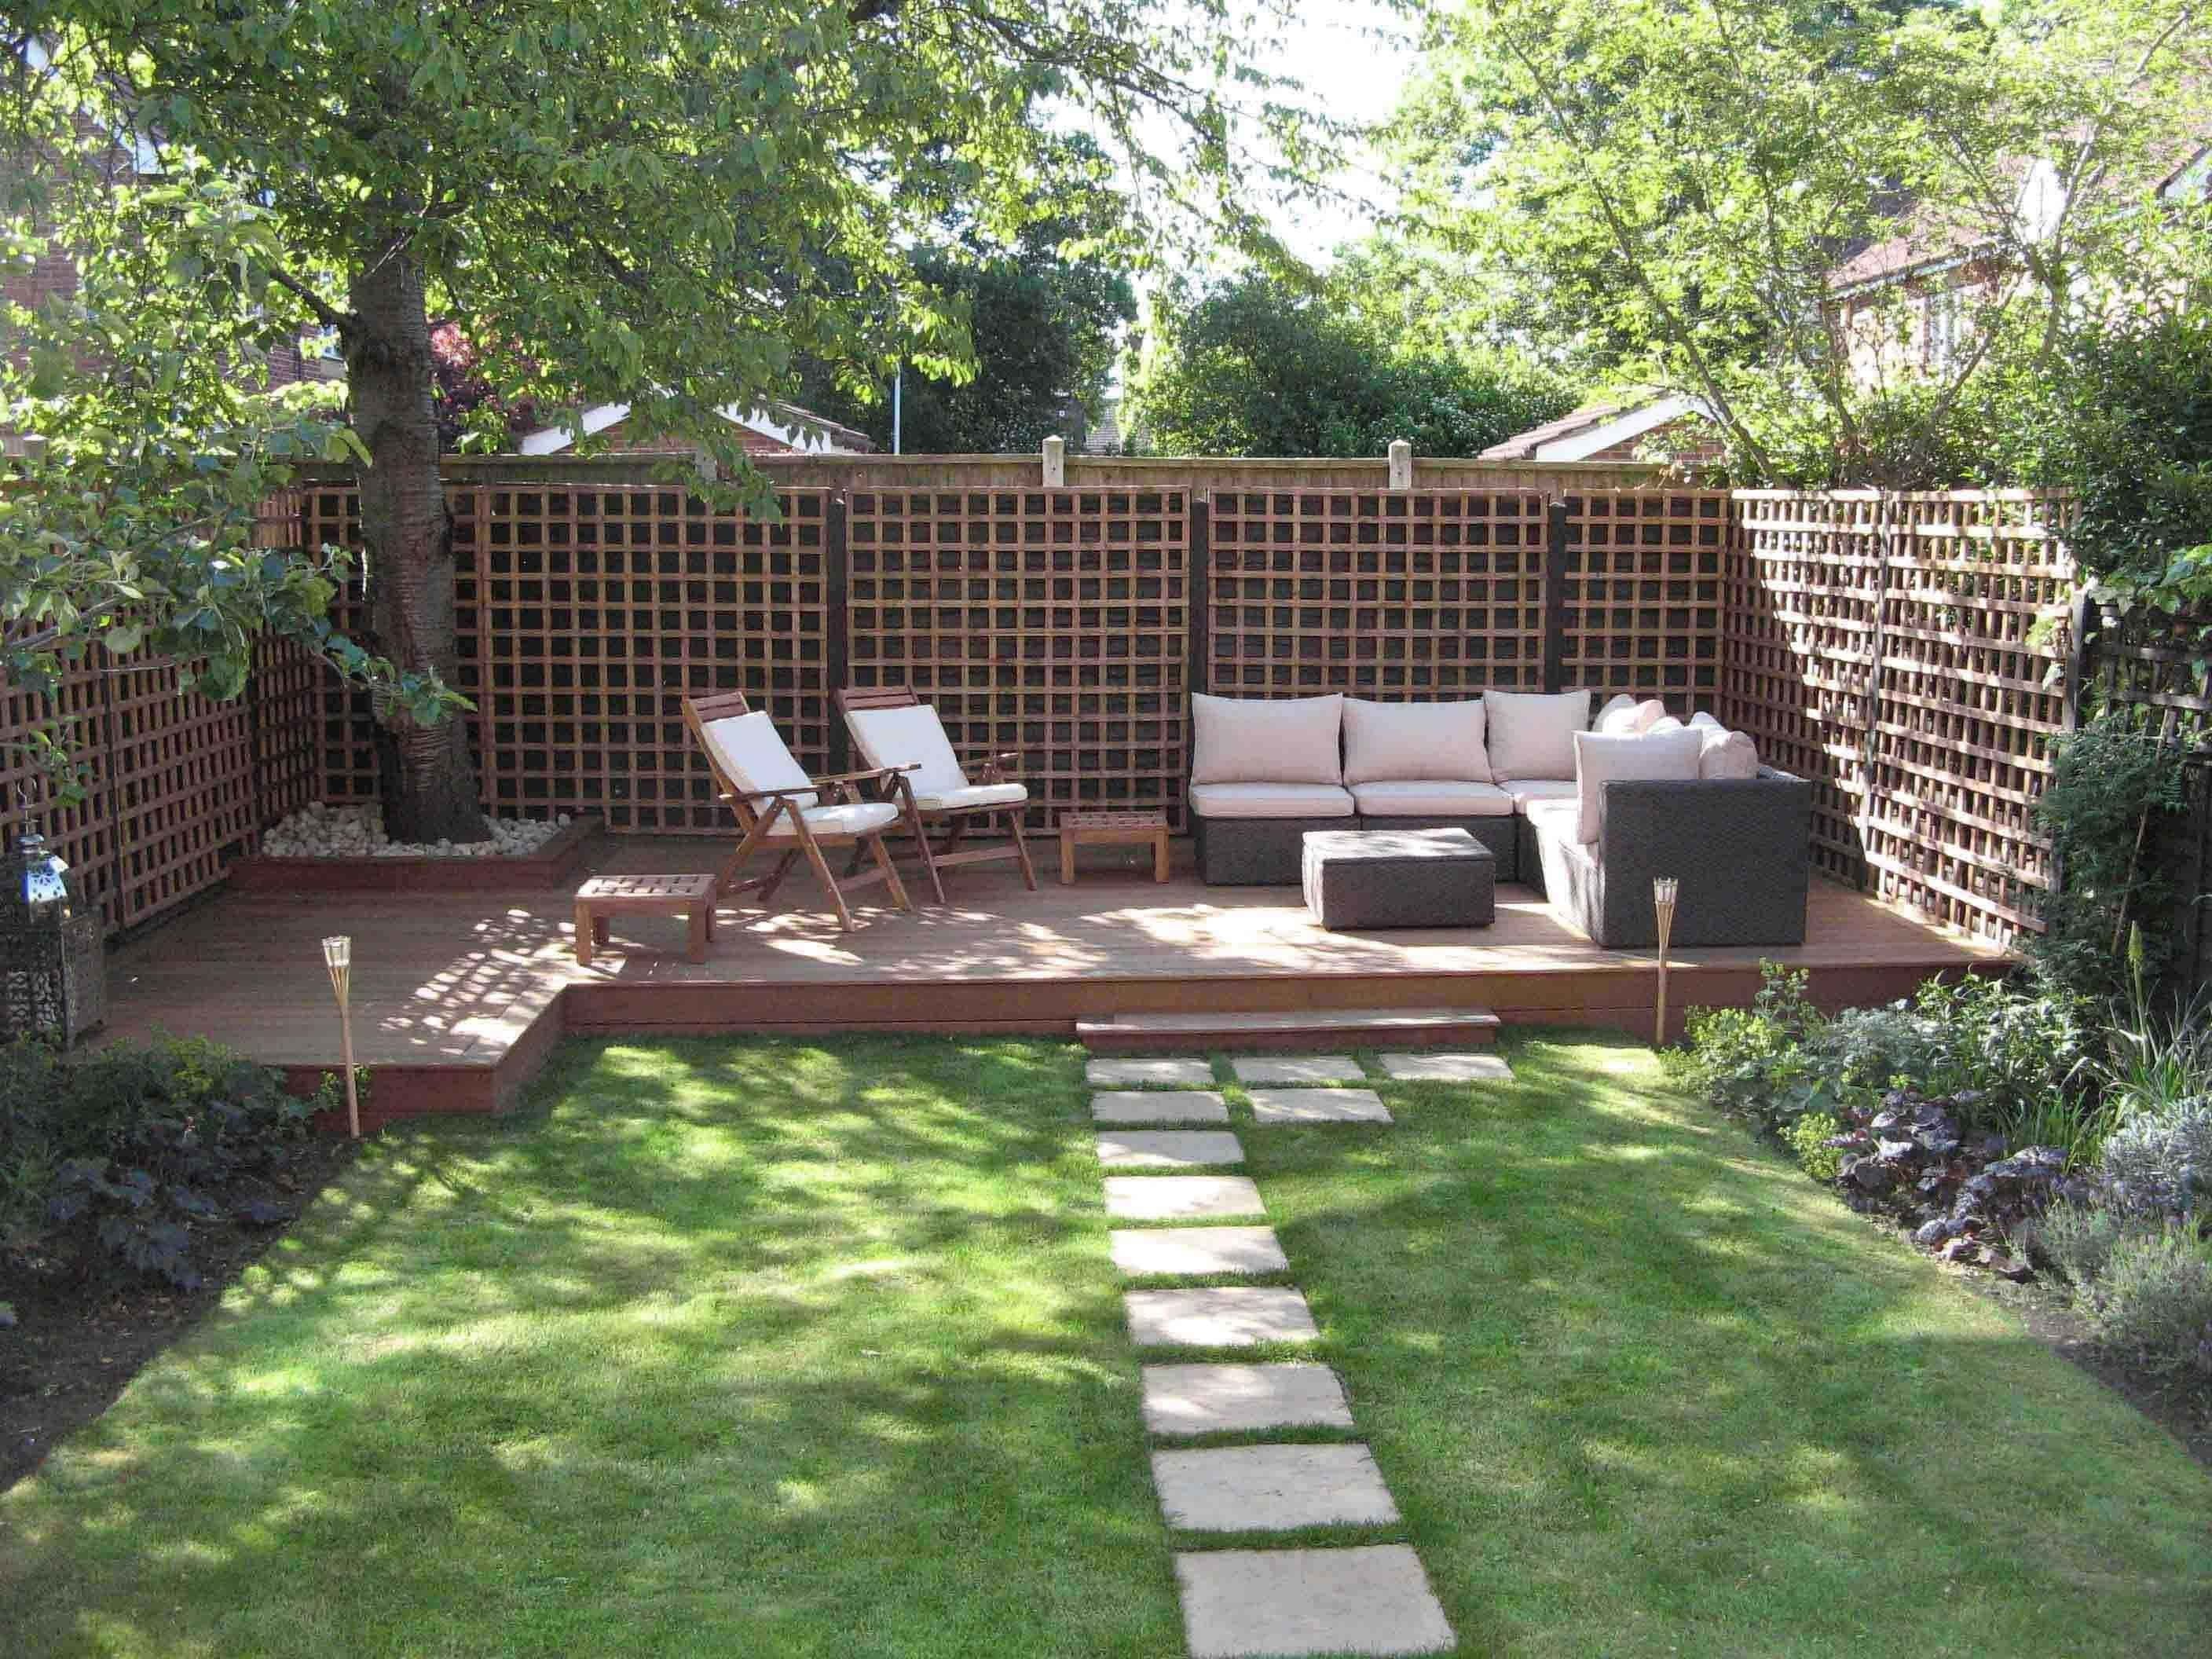 15 ideas how to makeover cheap backyard deck ideas on best large backyard ideas with attractive fire pit on a budget id=94243